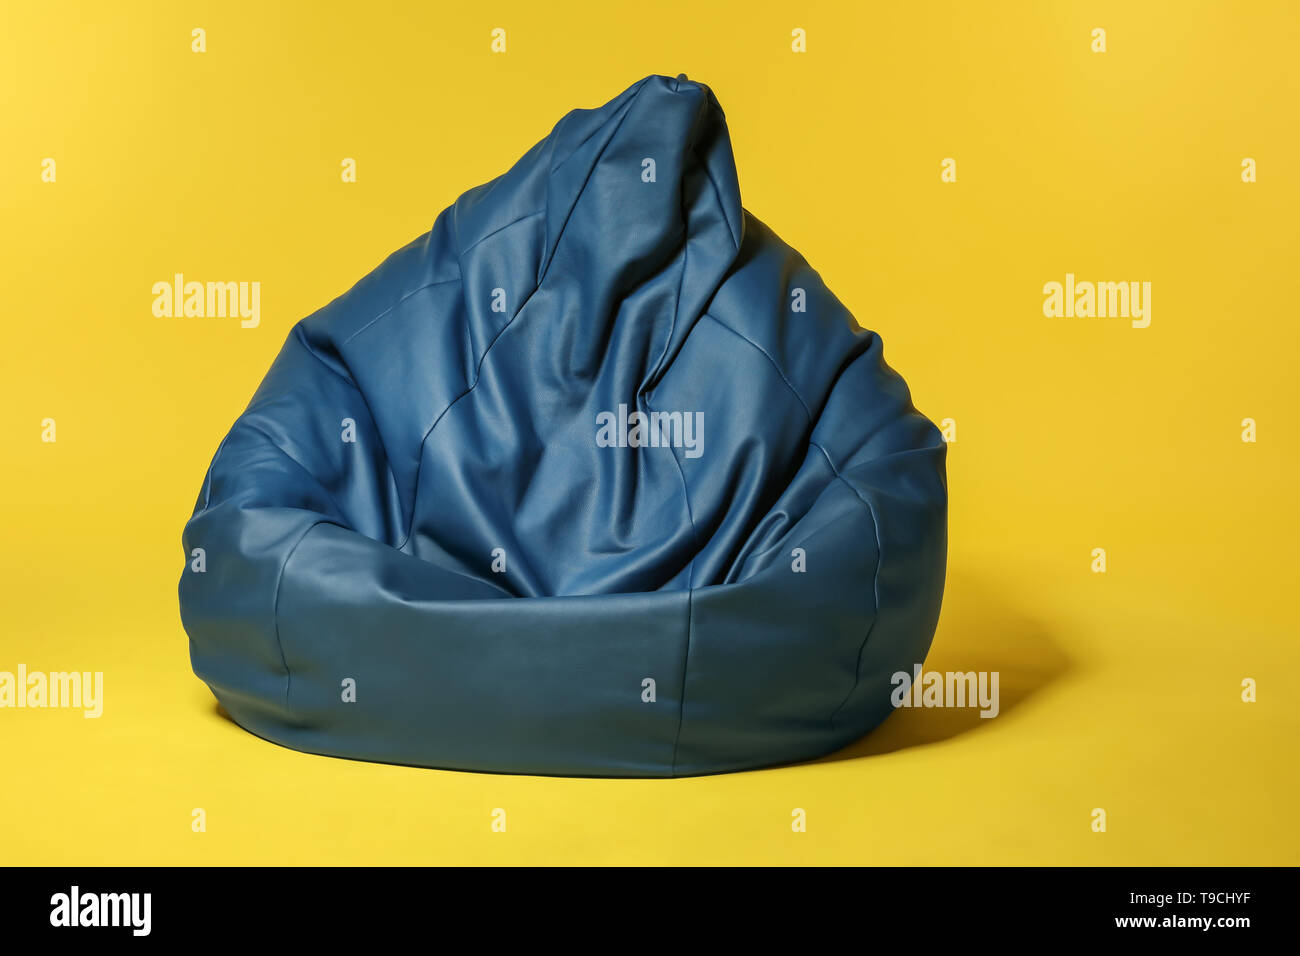 Beanbag chair on color background - Stock Image